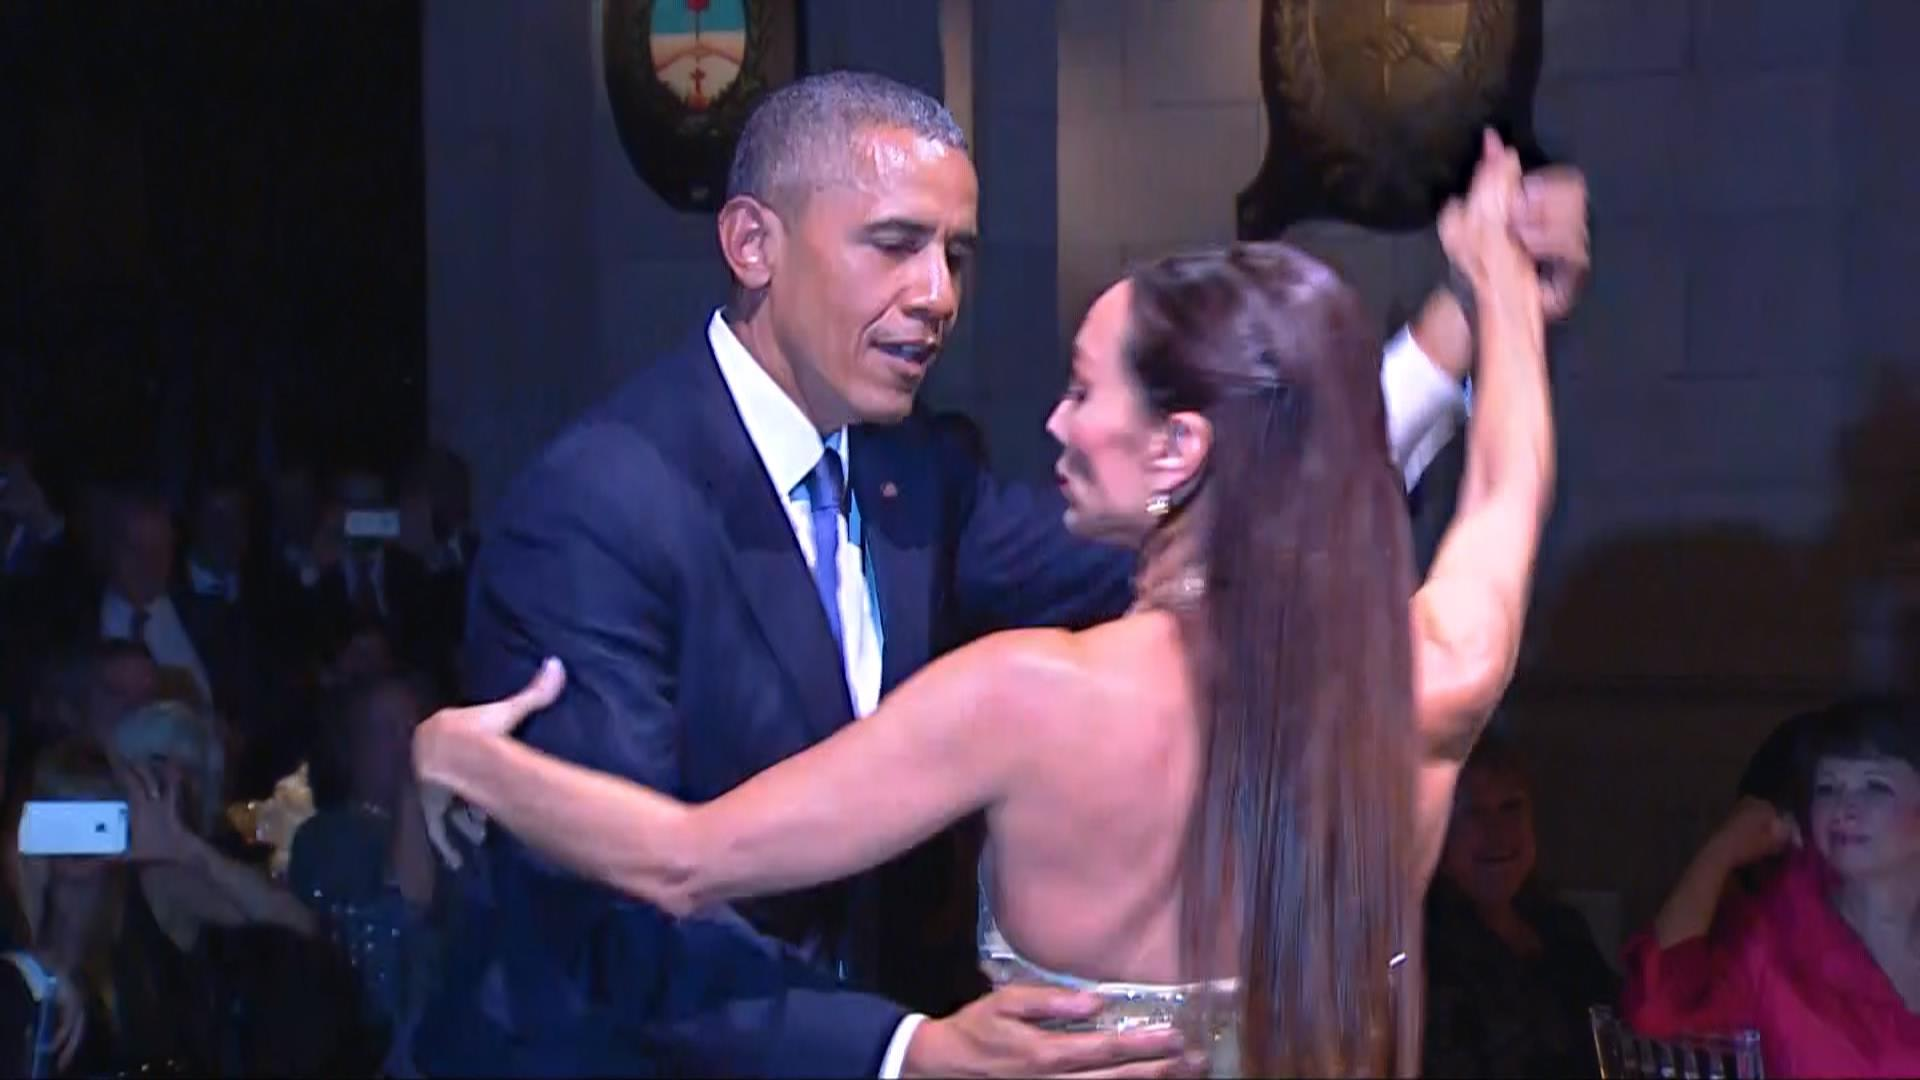 President Obama Does The Tango